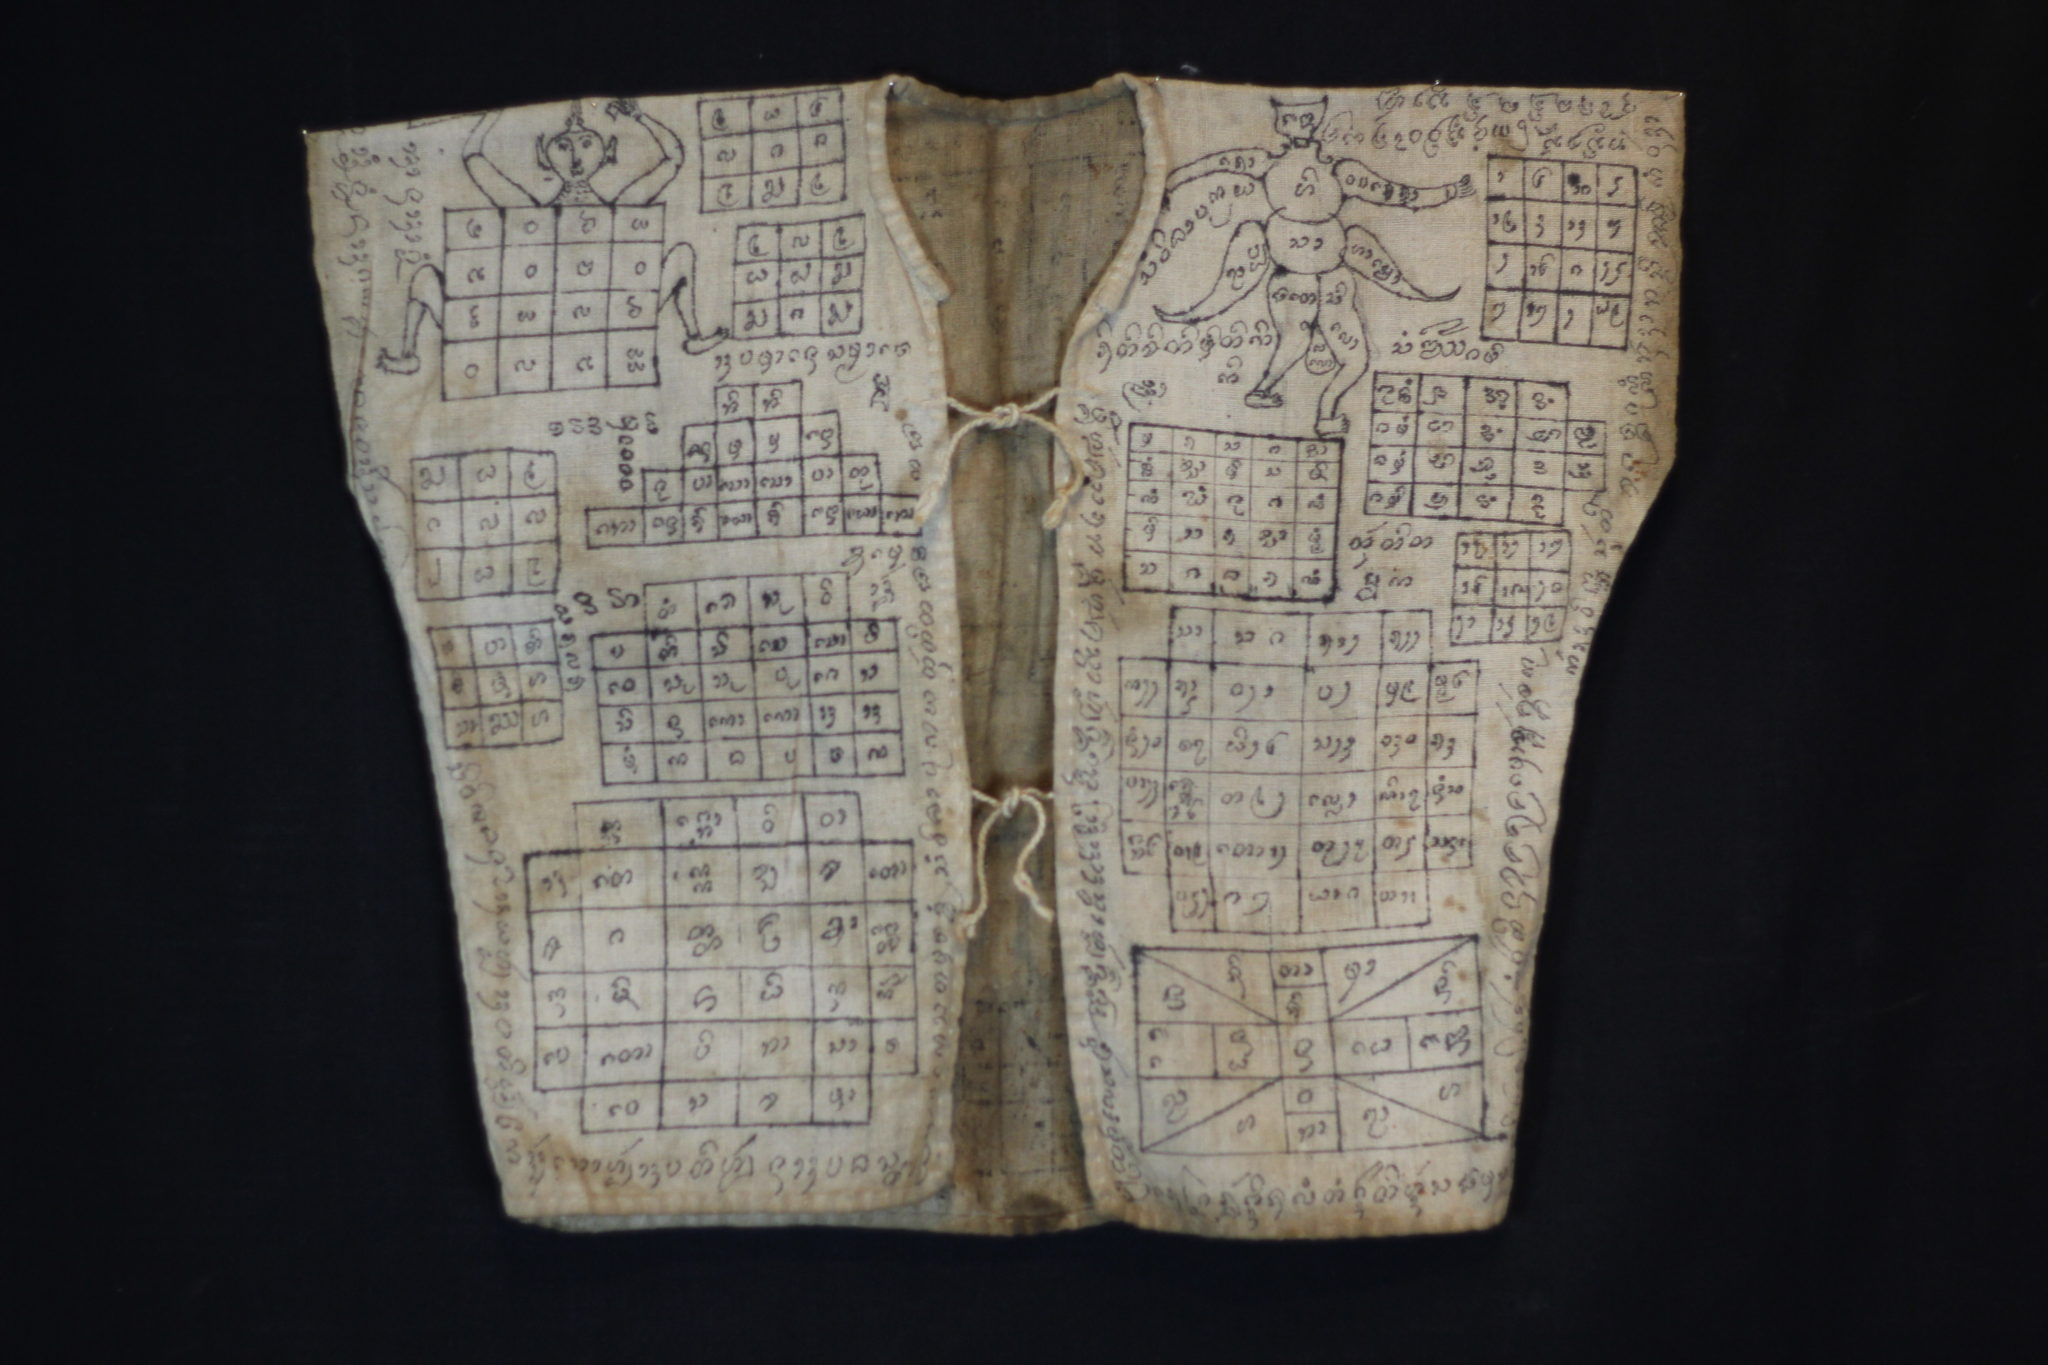 """Amulet Yantra Vest Nong Pho, Thailand Vietnamese shaman Mid to late 19th c. Cotton, pigment Handmade and drawn by the shaman It is endowed with prayers, signs, numbers and a depiction of the great guru monk Luang Phor Doem. The sacred cloth is an undergarment worn as a talisman with great protective power against physical harm, like bullets, spears, knives, wild animals and evil spirits. 19"""" x 22"""" $2,900."""